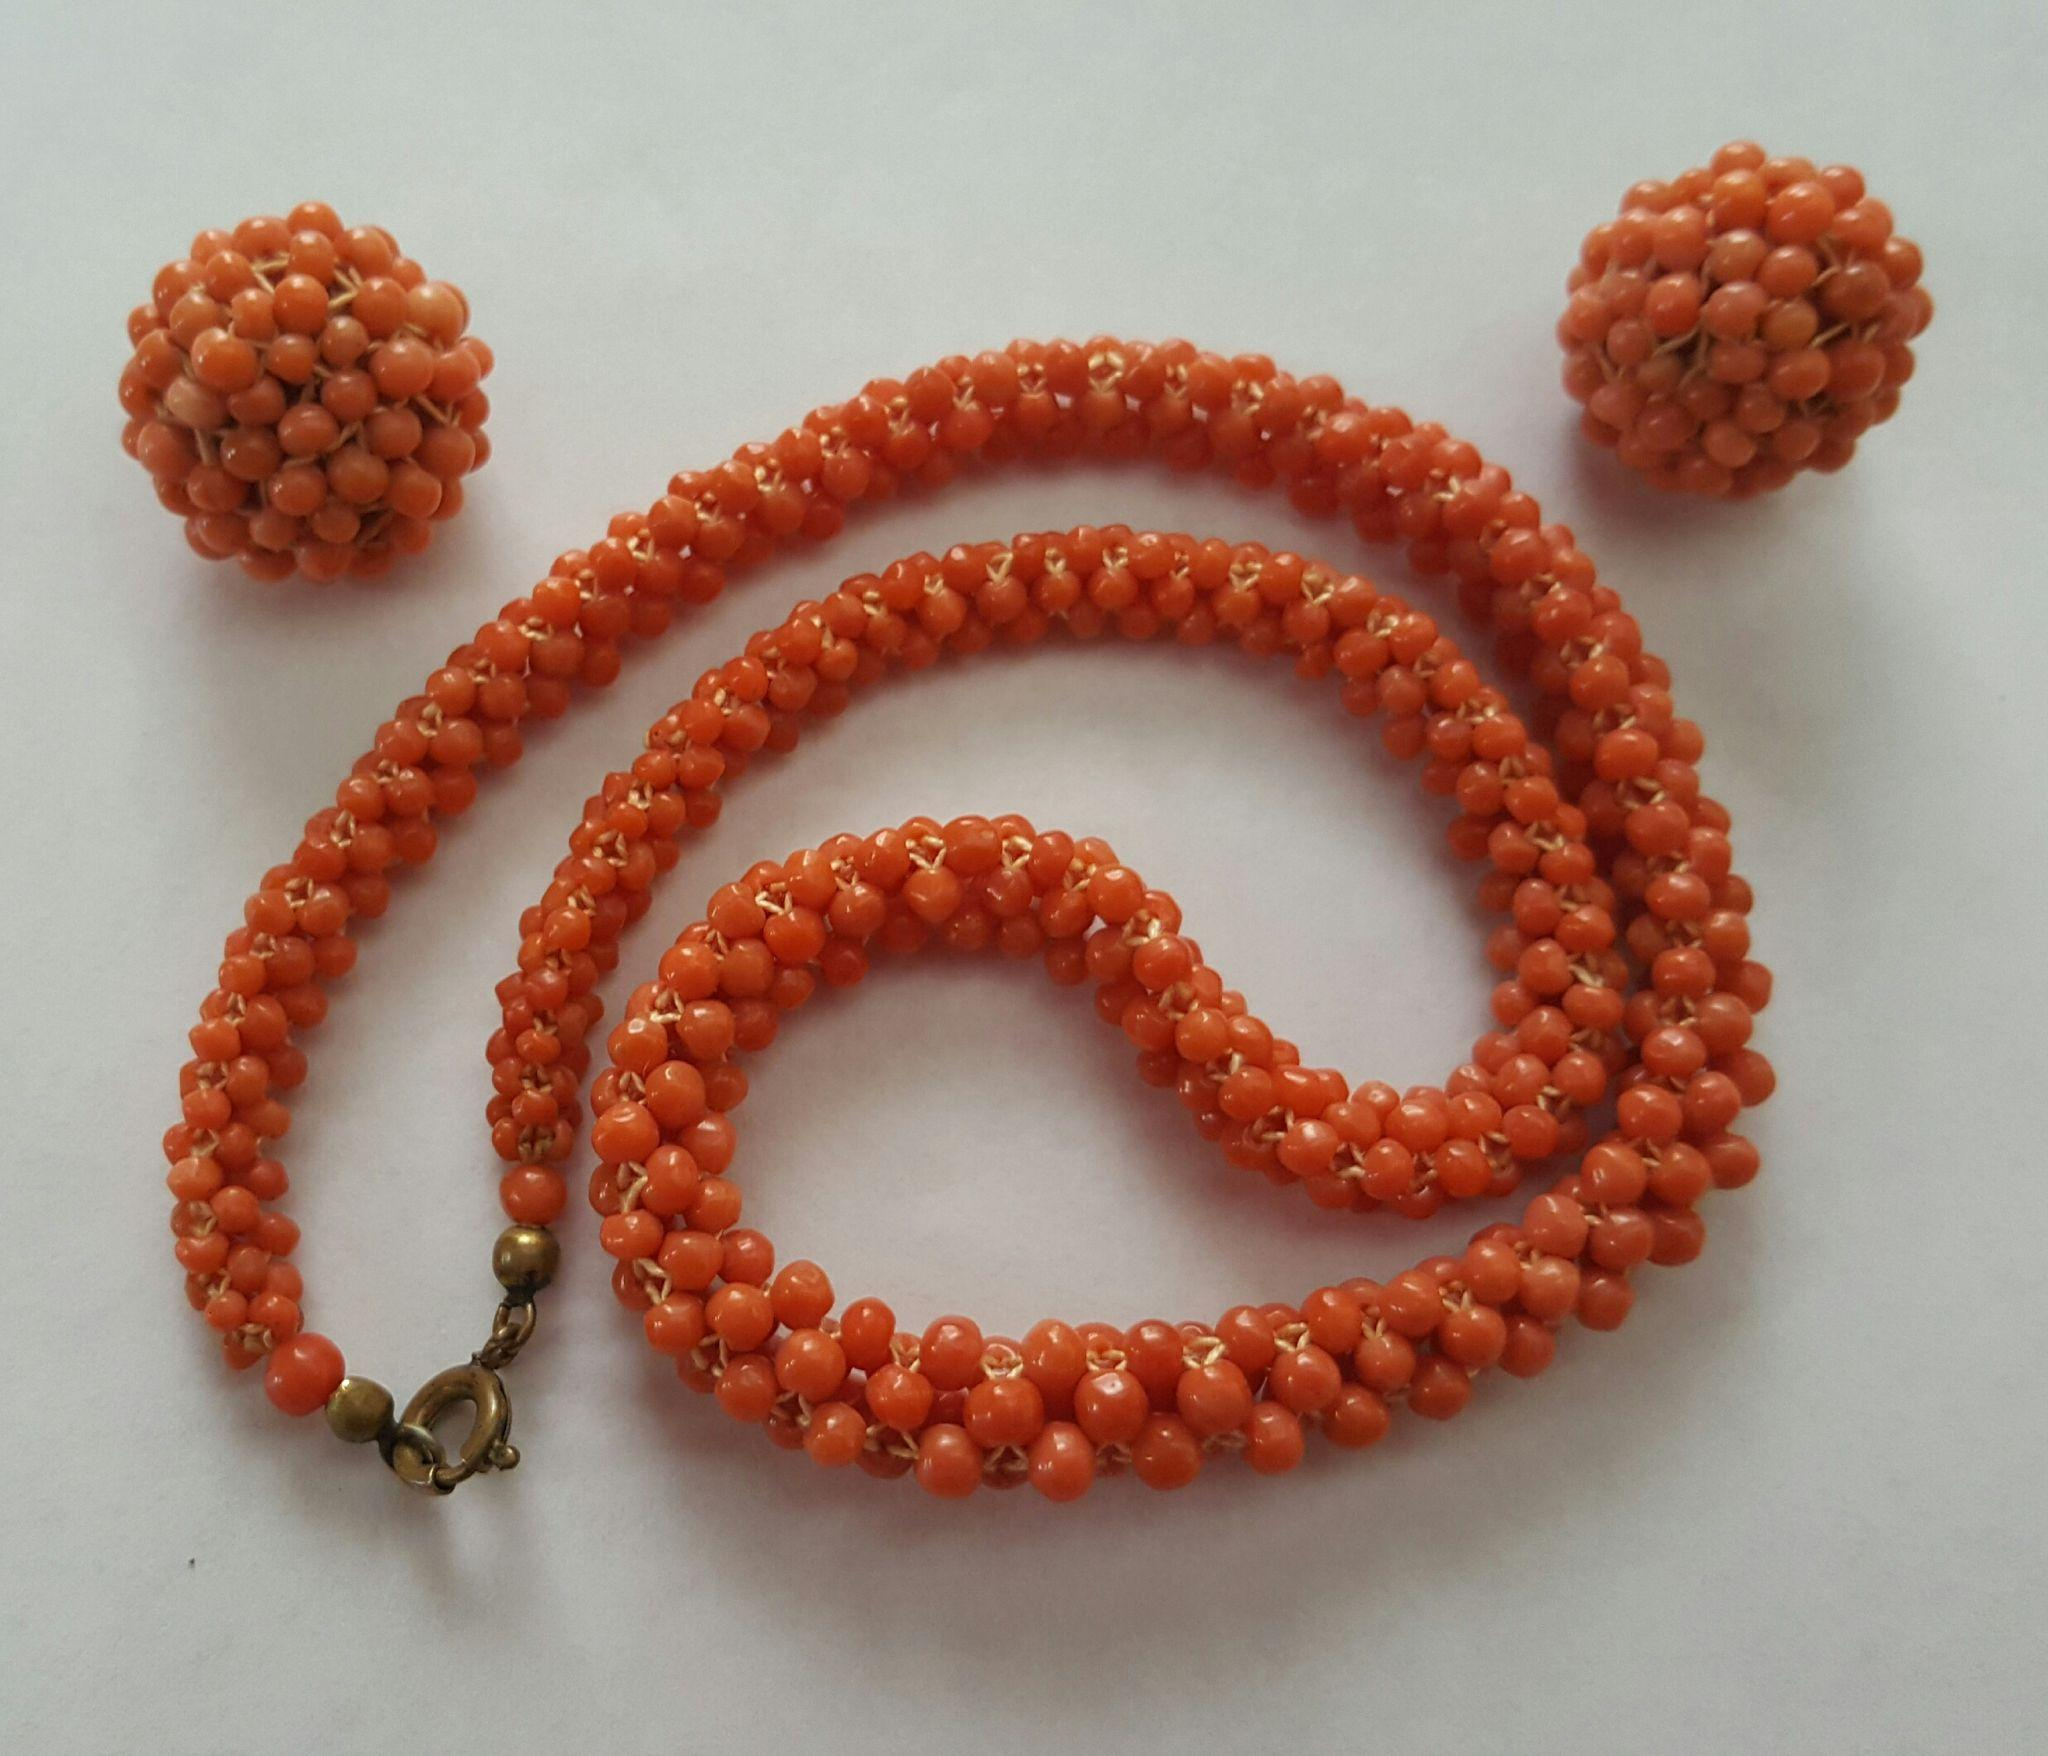 "1930's 16"" Woven Coral Bead Necklace & 20mm Earring Suite"